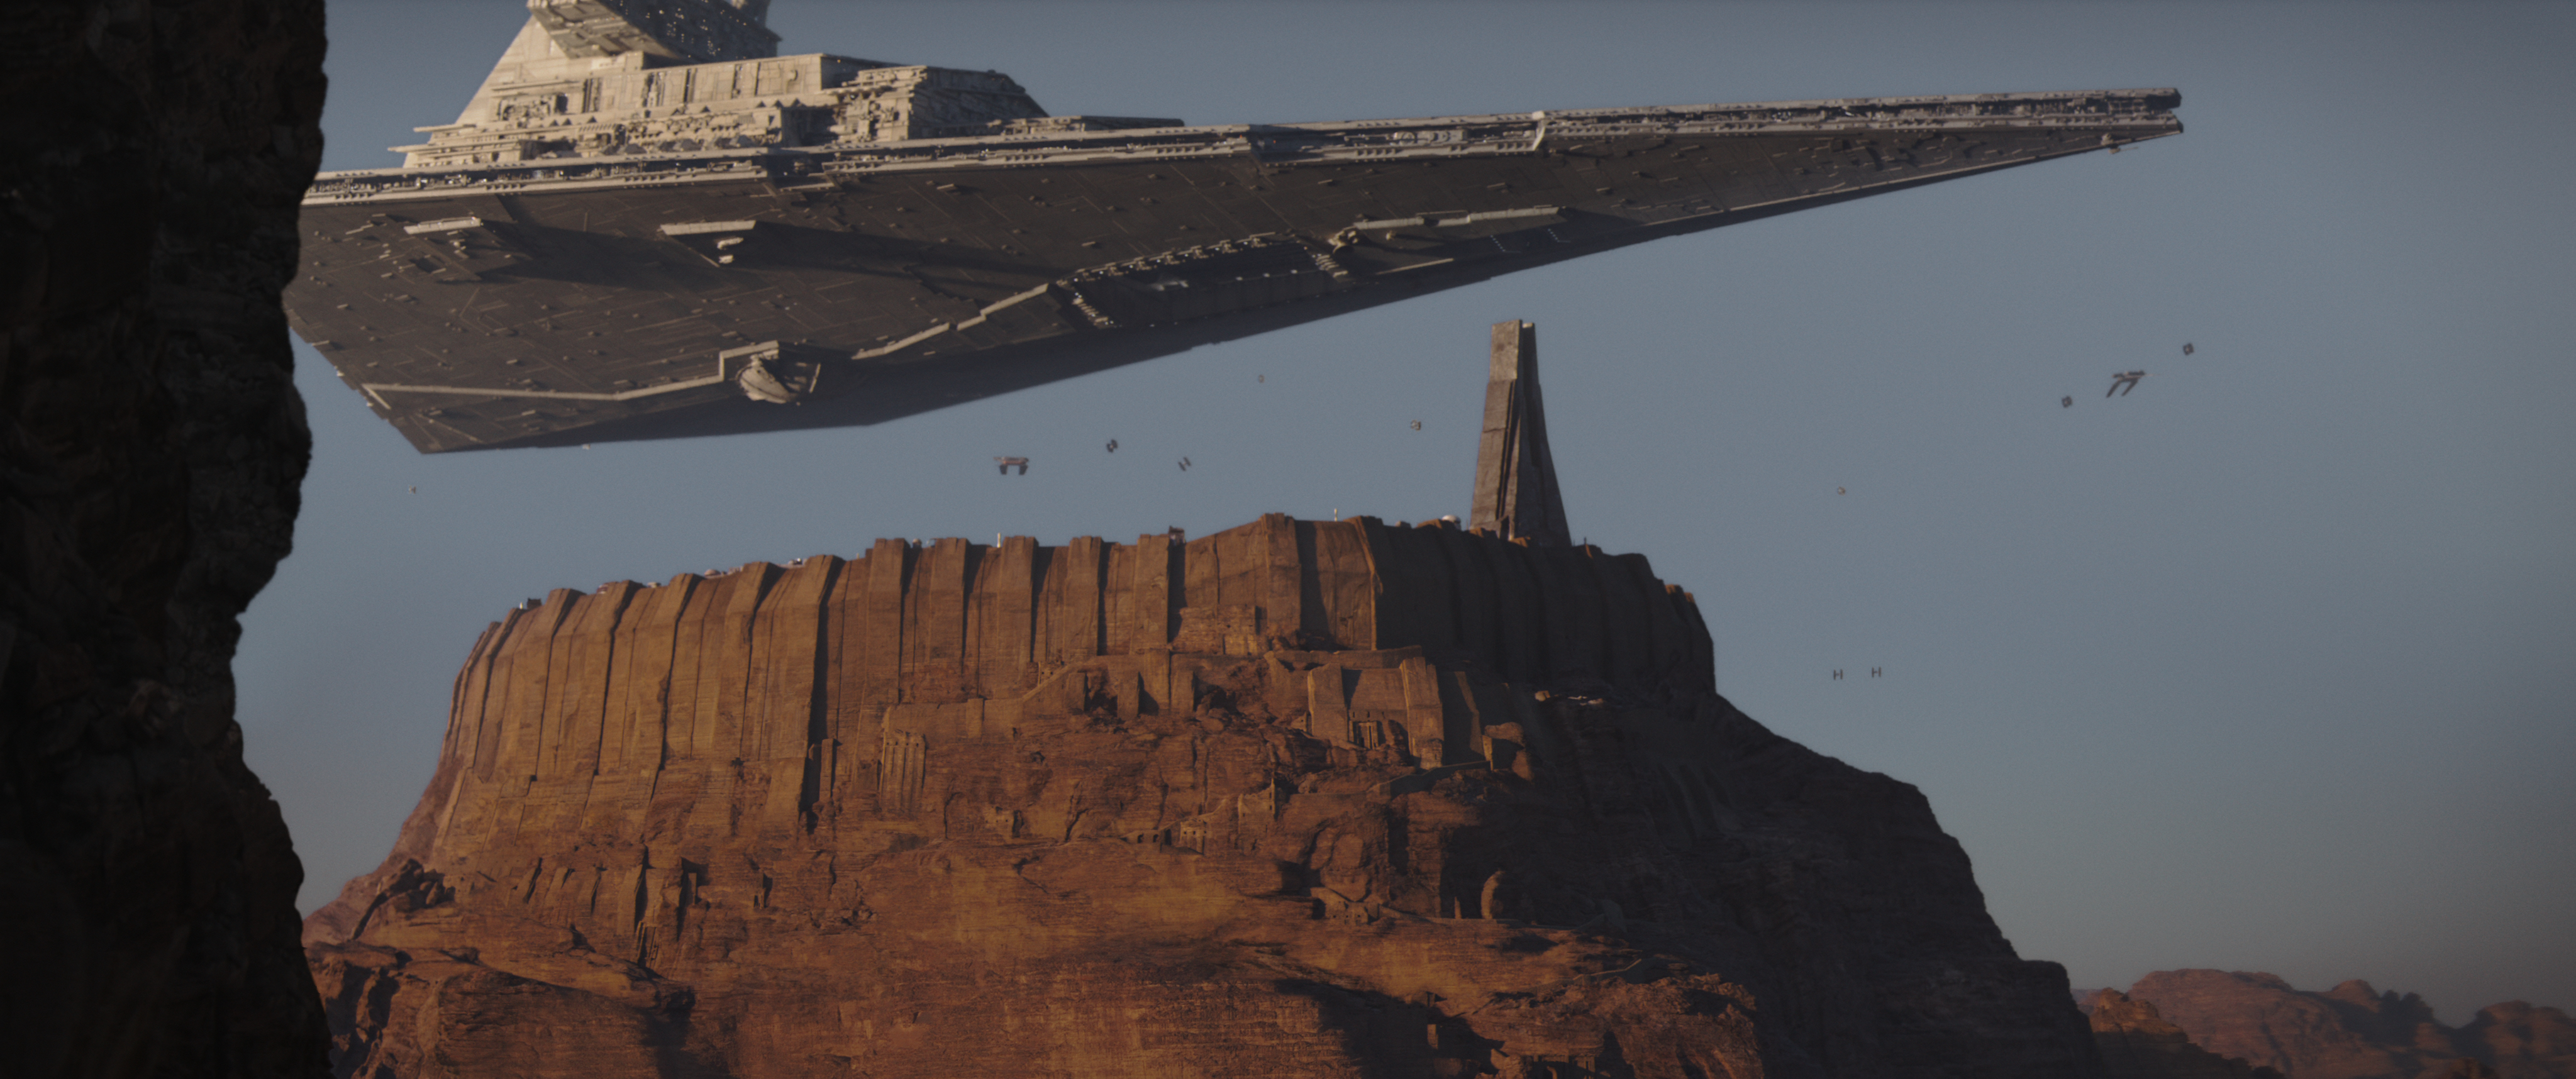 Rogue One: A Star Wars Story Star Destroyer Ph: Film Frame ©2016 Lucasfilm Ltd. All Rights Reserved.